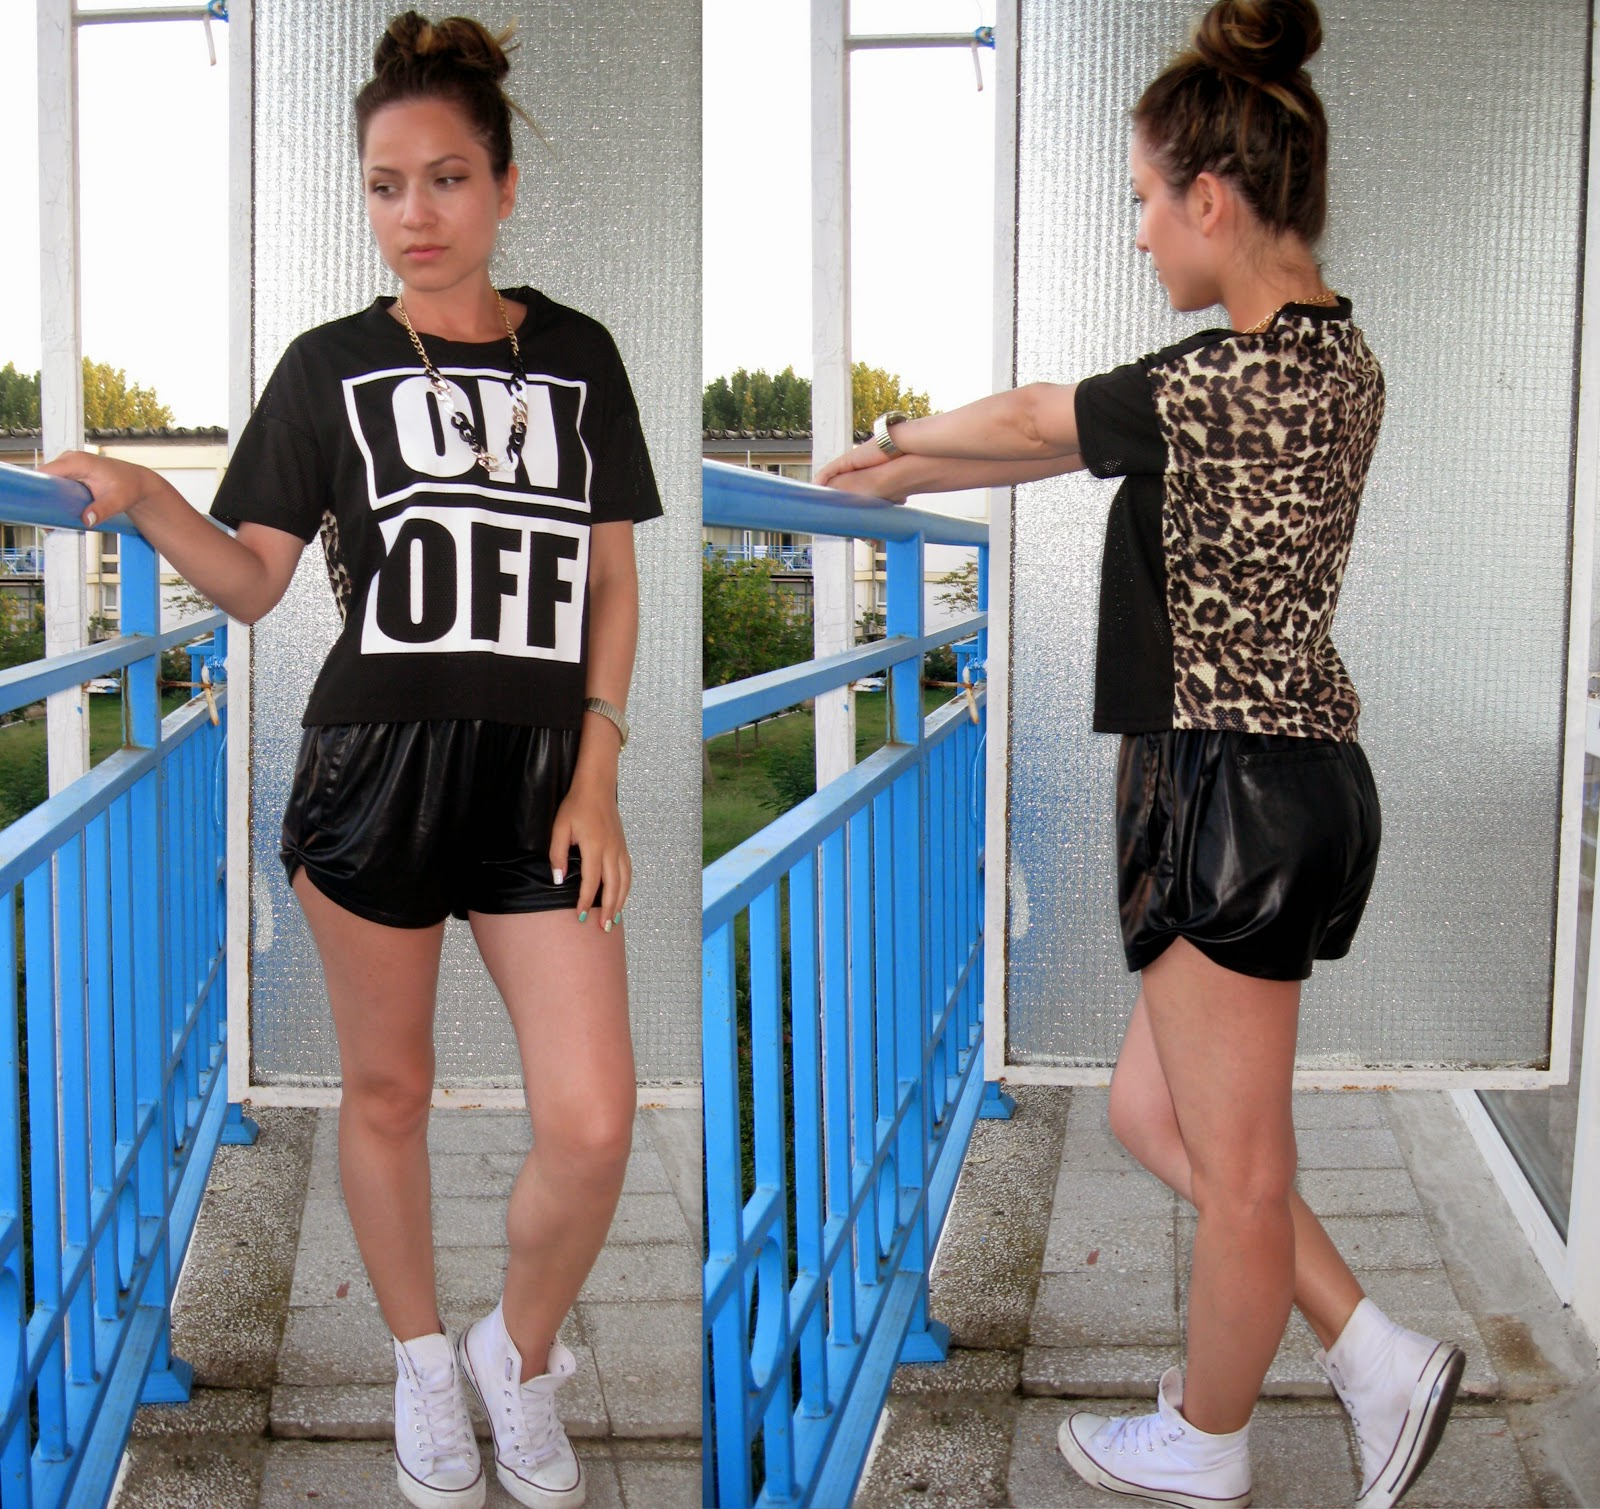 terranova black on/off print crop top with leopard print back, black faux leather shorts, statement necklace, messy bun, white converse,